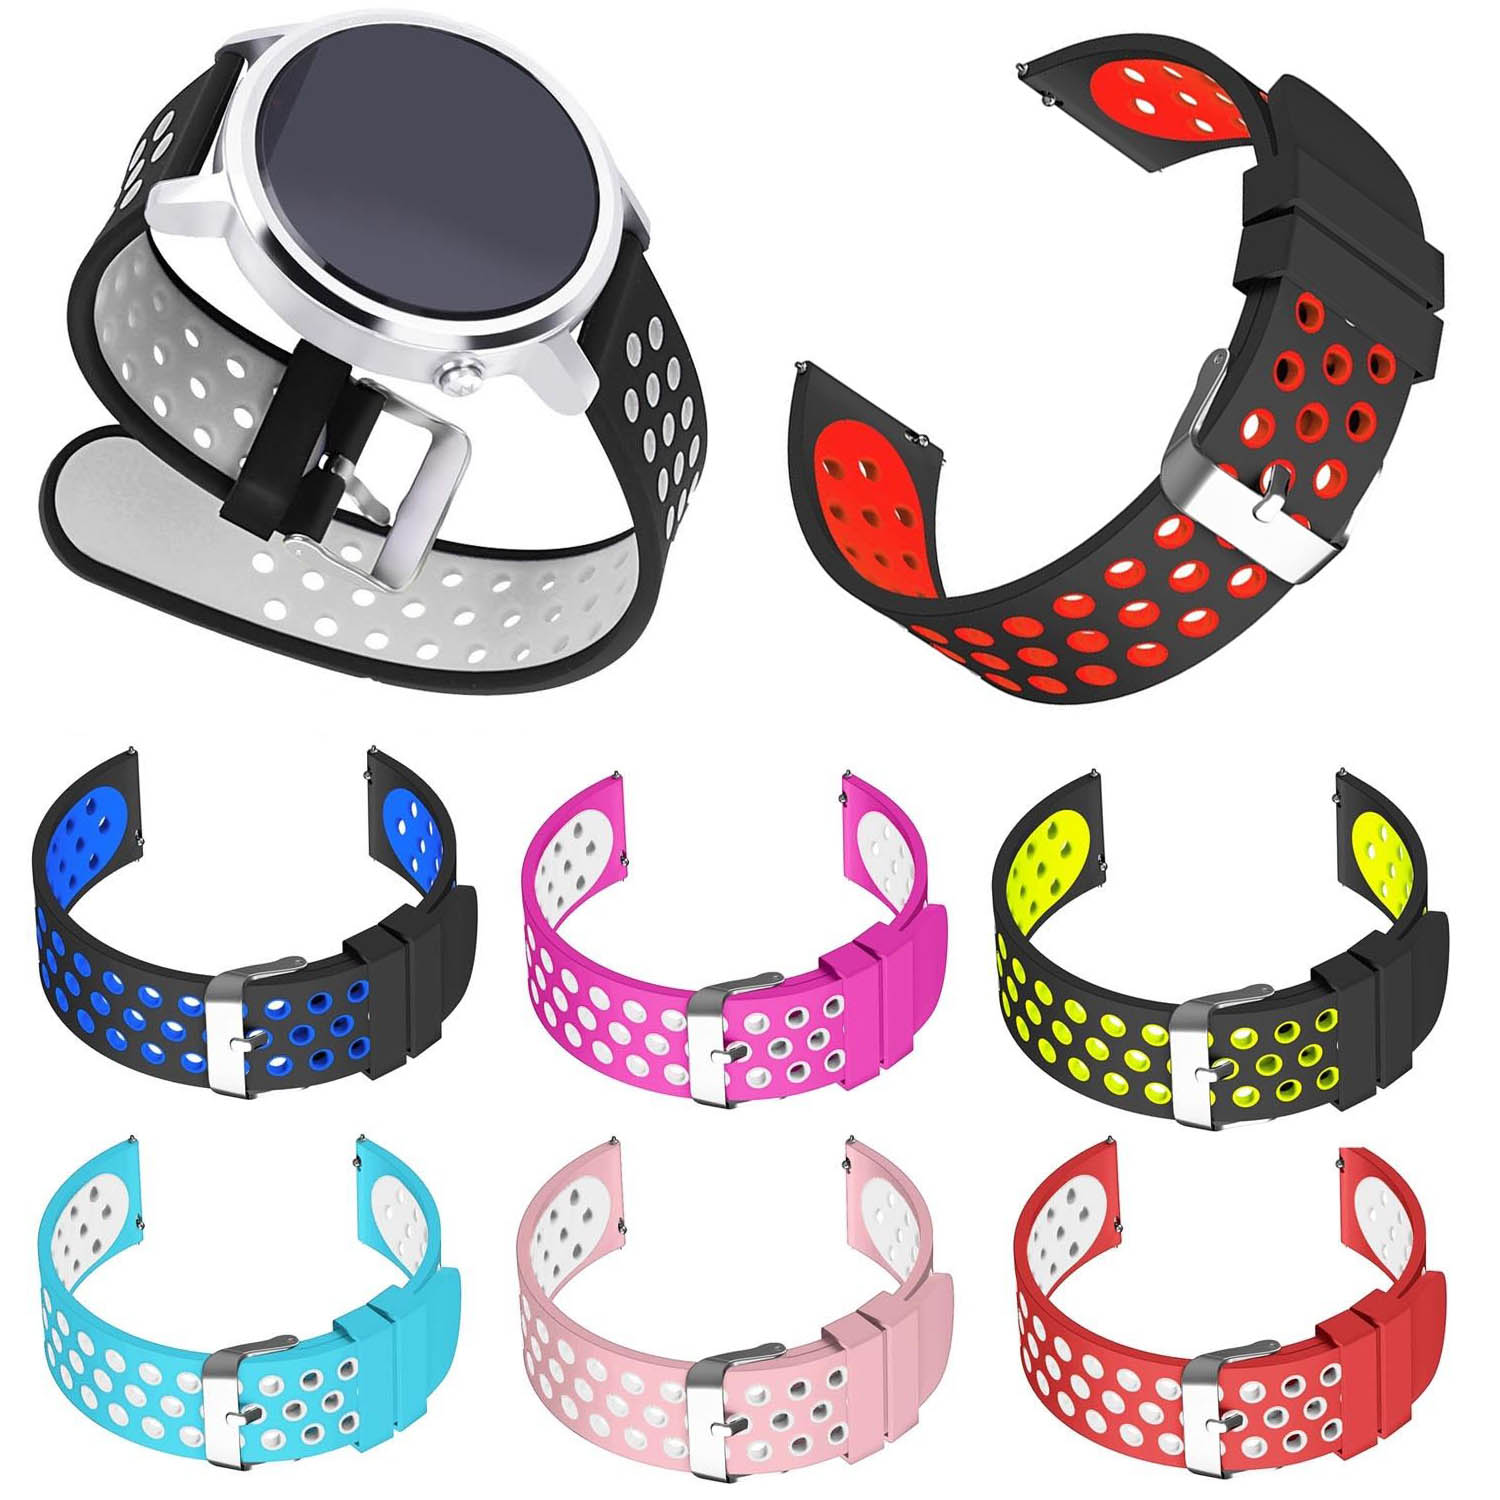 Soft Durable Silicone Bracelet for Huawei Watch 1st Gen Band 18mm / Huawei Watch 2 Sport Watch Strap 20mm Wristband w Metal Pins